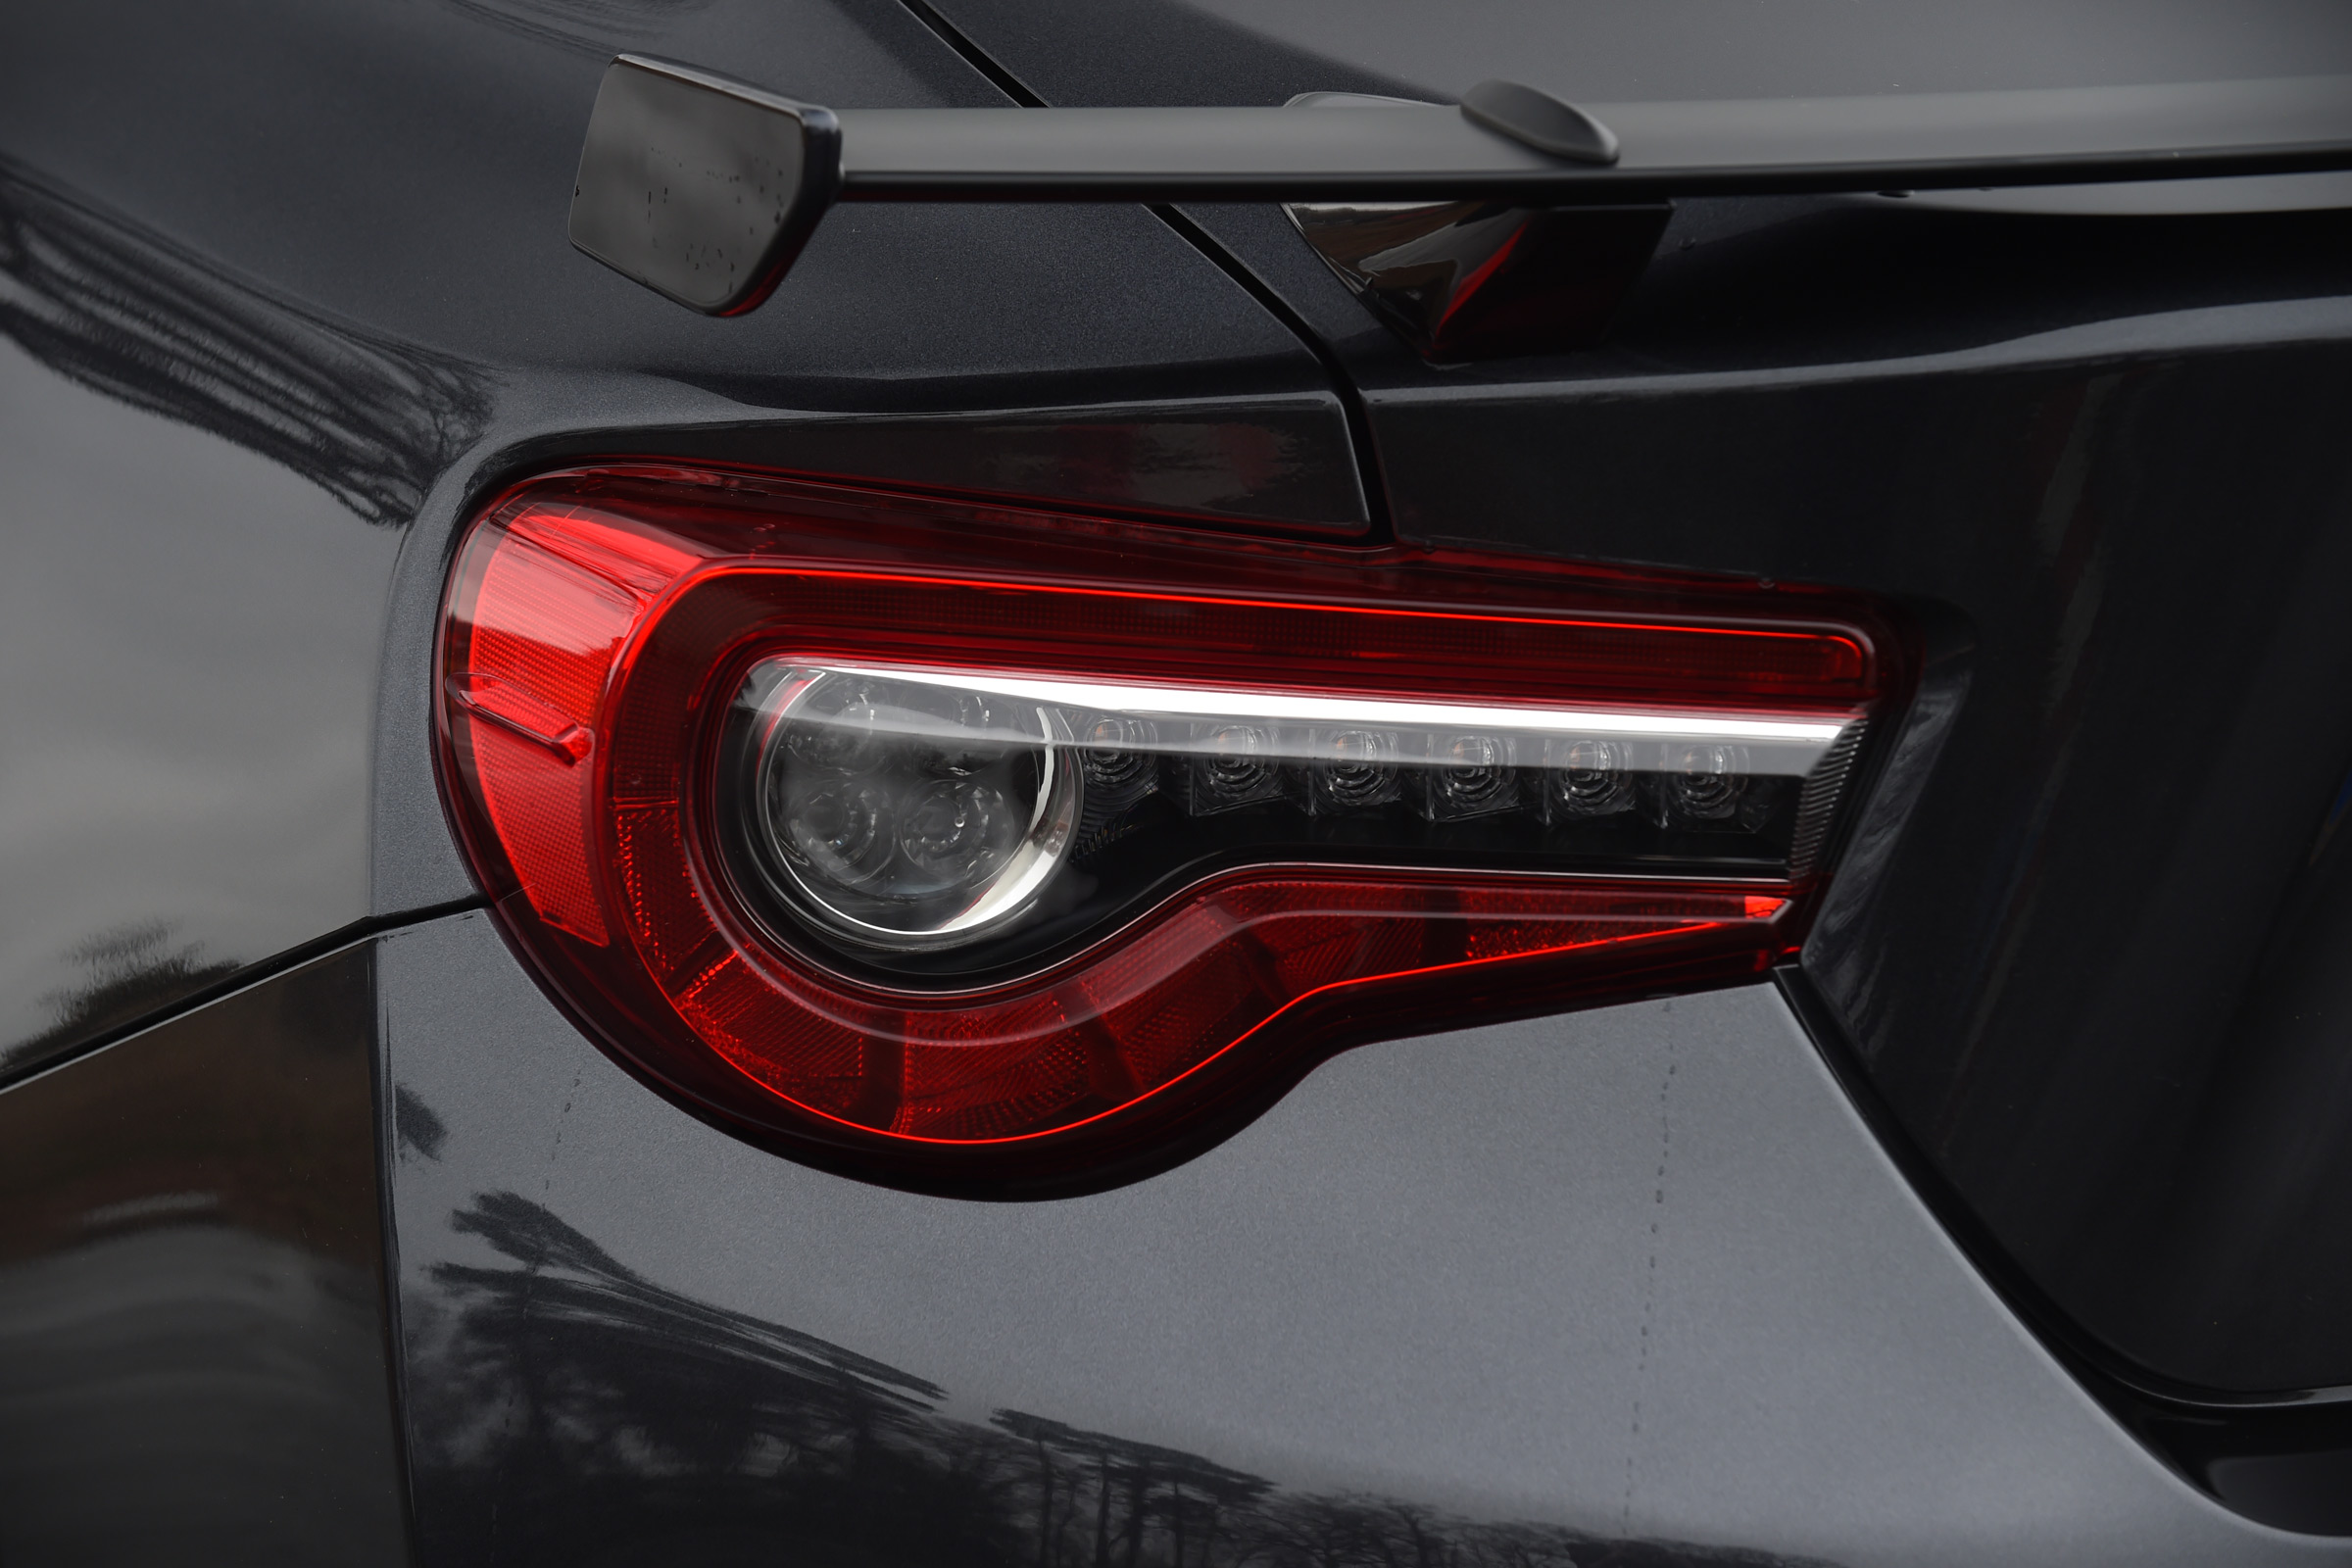 2017 Toyota GT86 Black Exterior View Taillight (View 13 of 13)